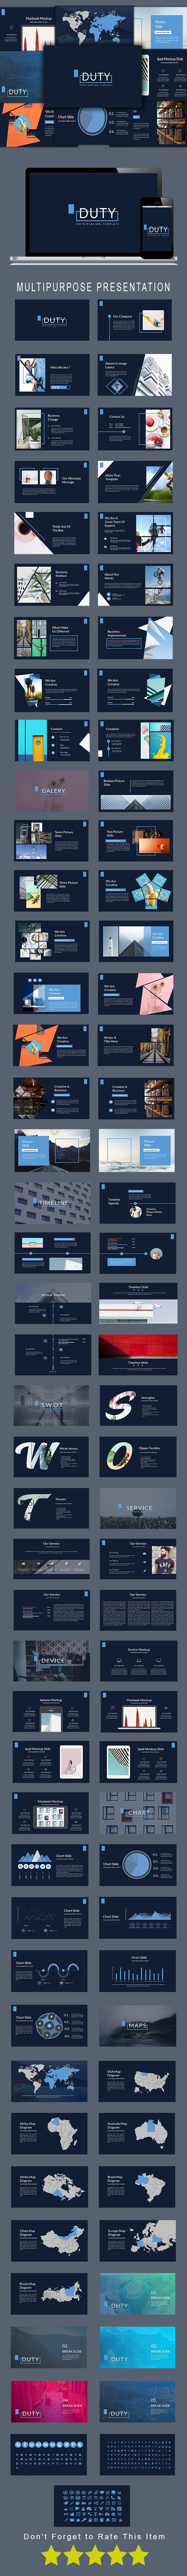 Duty Multipurpose #Powerpoint Template - #Presentation #Templates Download here: https://graphicriver.net/item/duty-multipurpose-powerpoint-template/19504996?ref=alena994